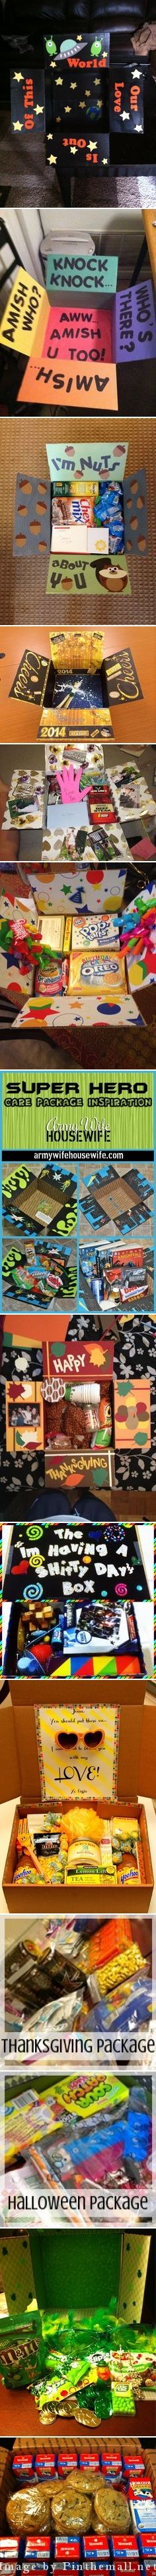 Idea for care packages Deployment gifts care package ideas